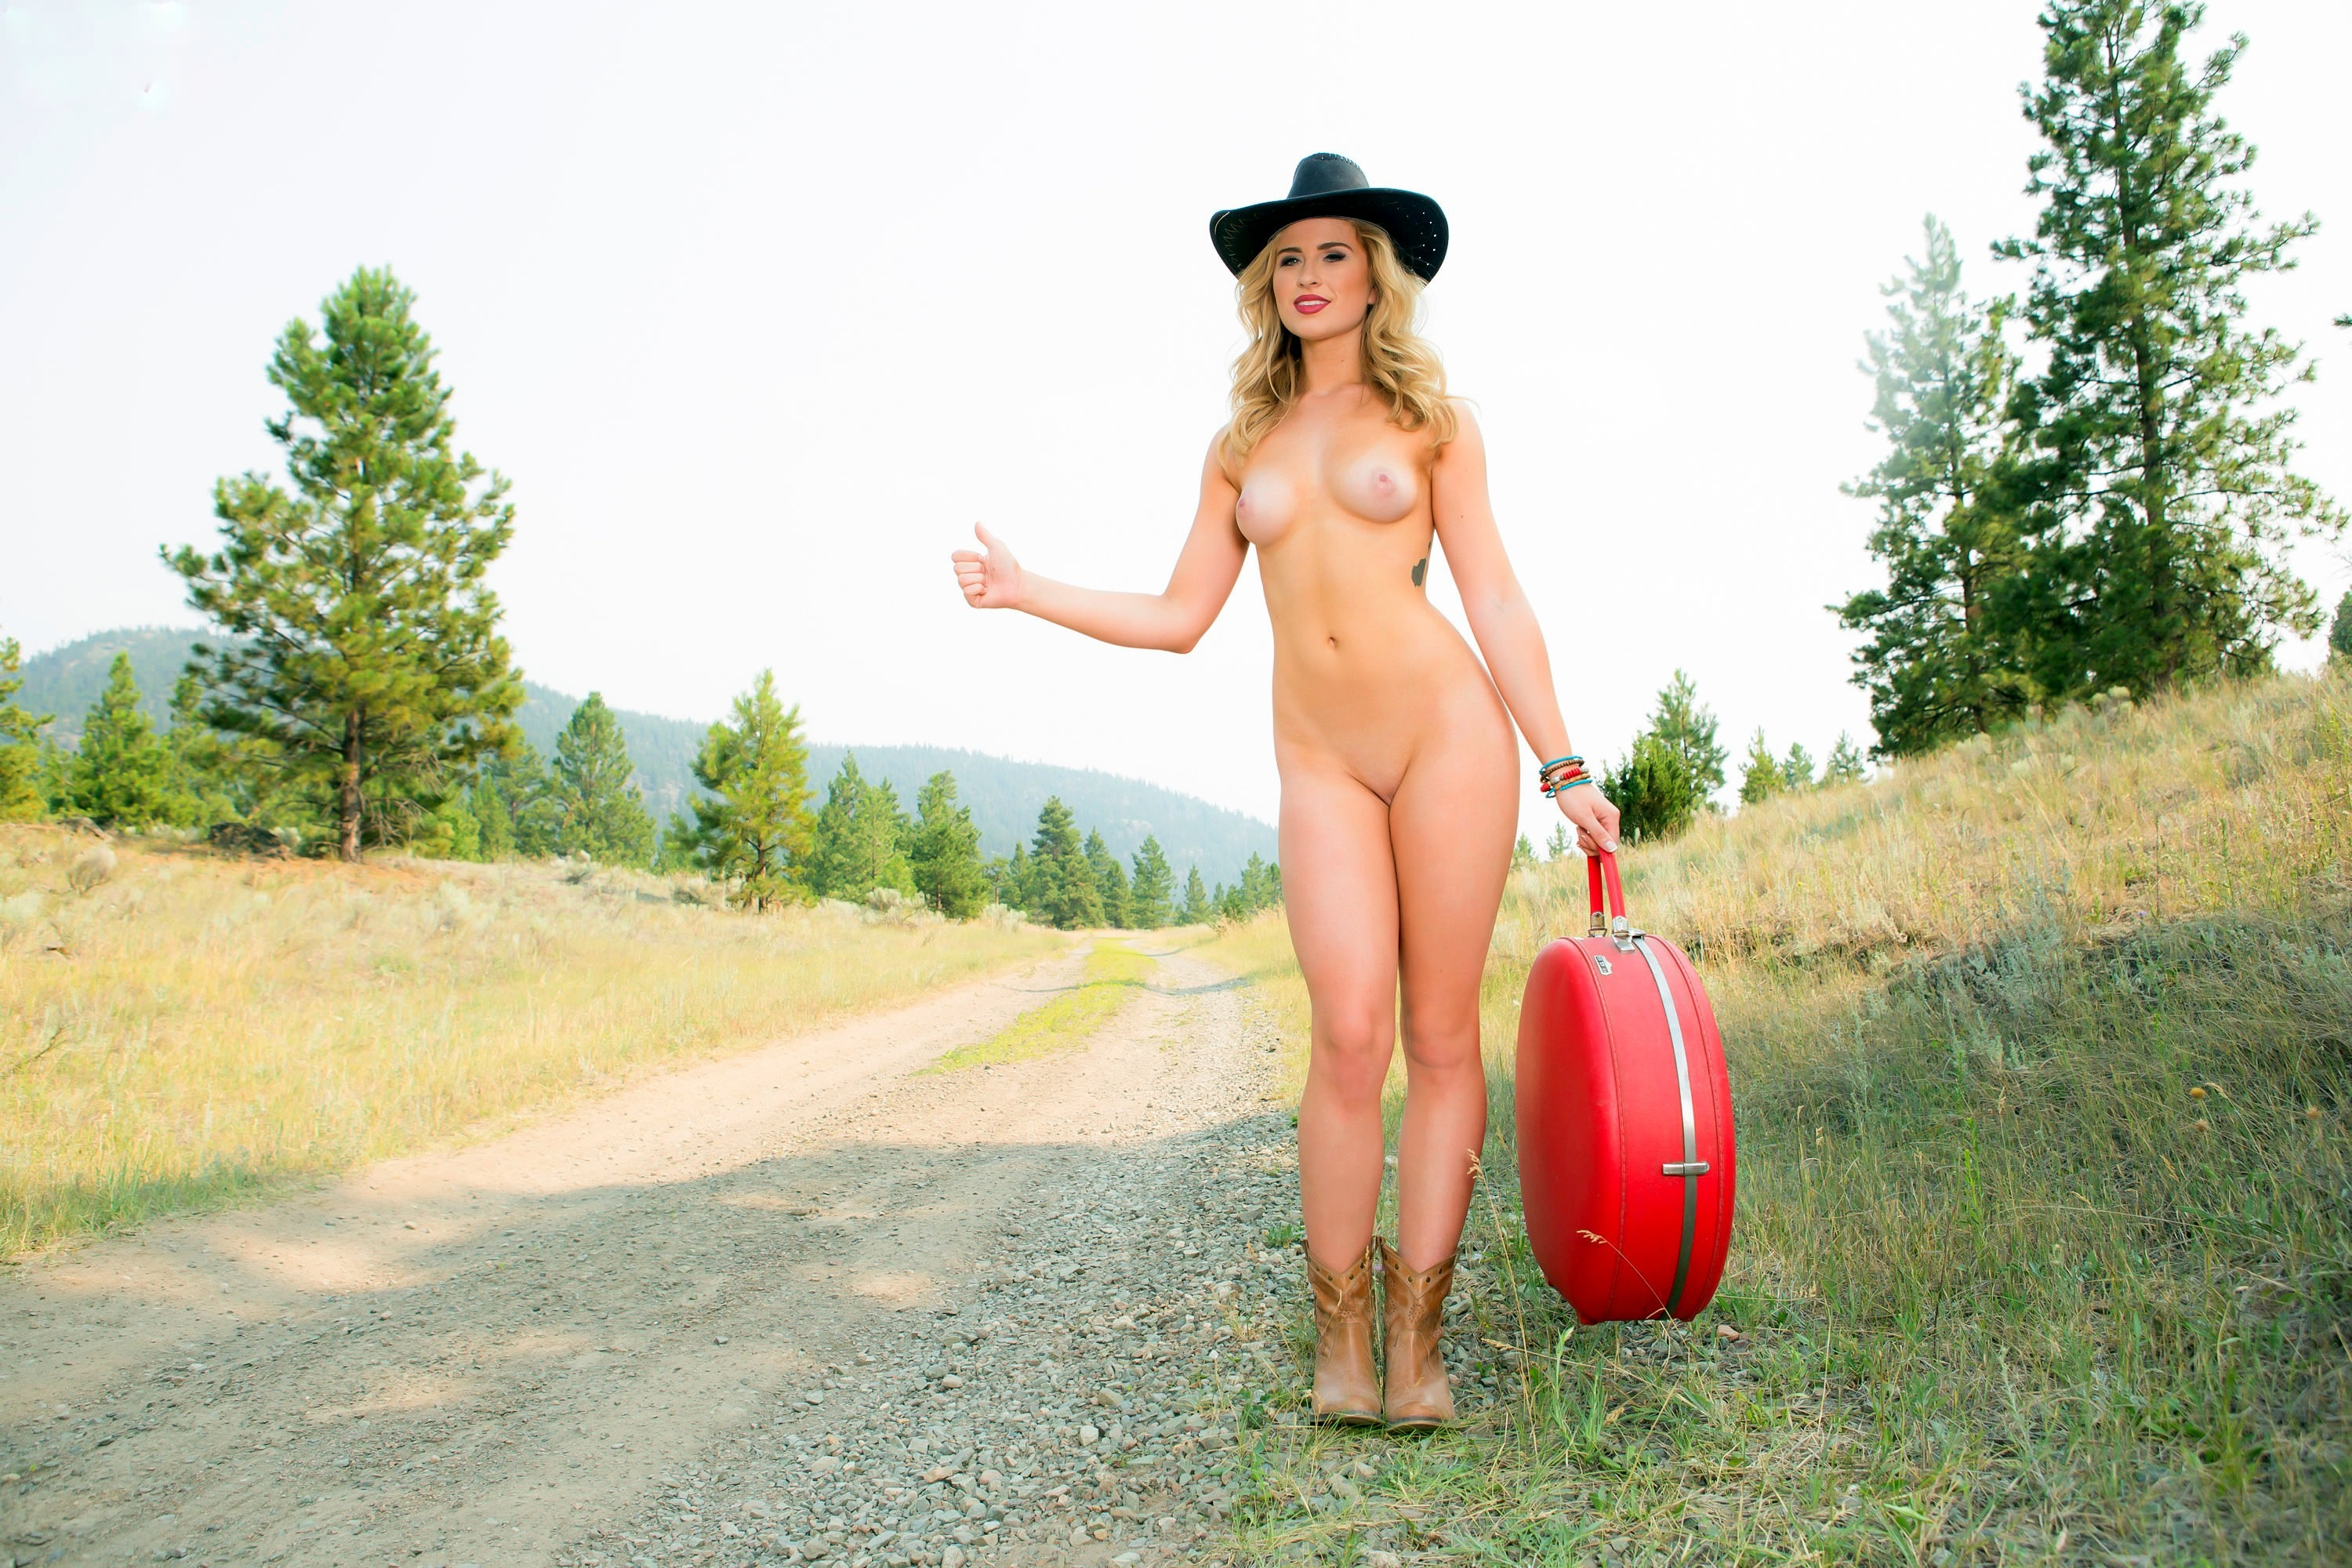 Naked Girls On The Side Of The Road